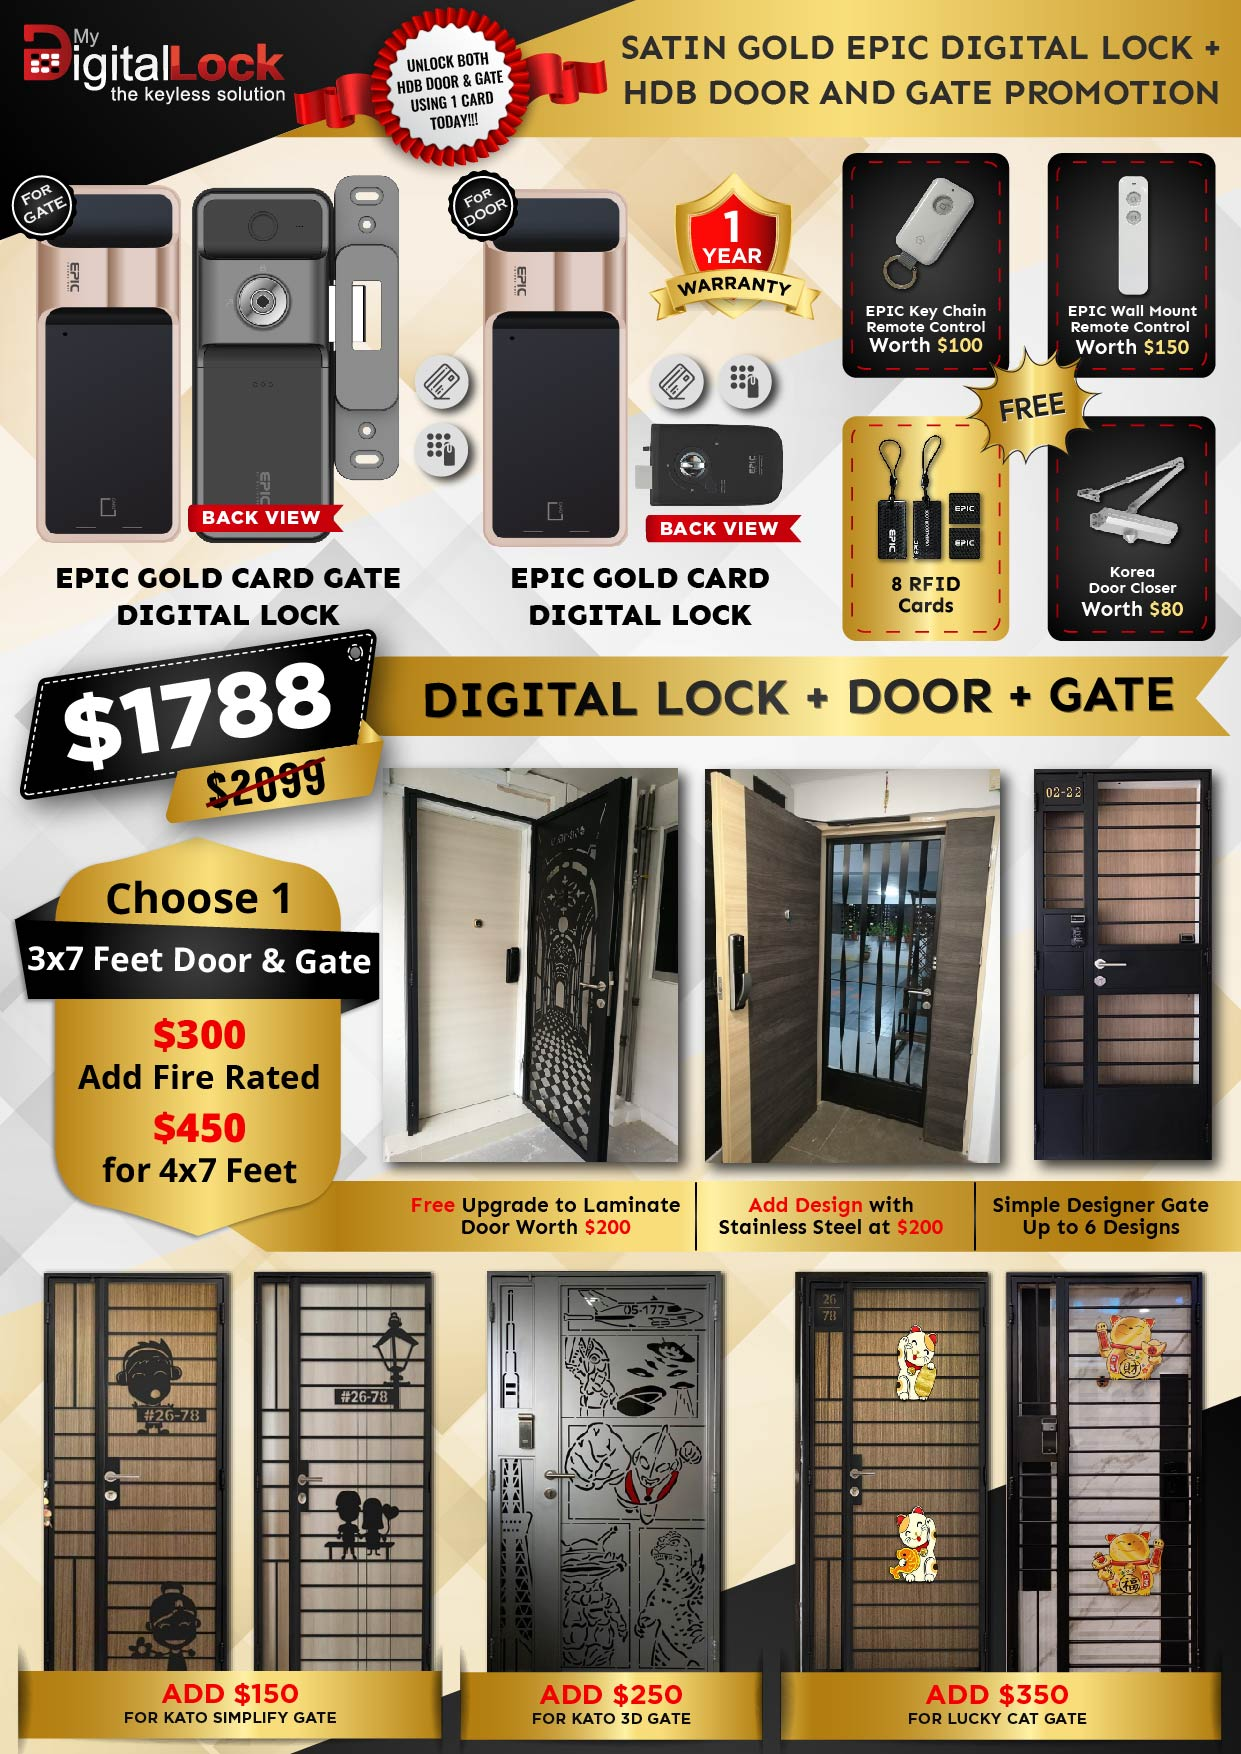 Golden-Rat-Year-HDB-Door-and-Gate-Promotion-with-EPIC-5G-Gate-Digital-Lock